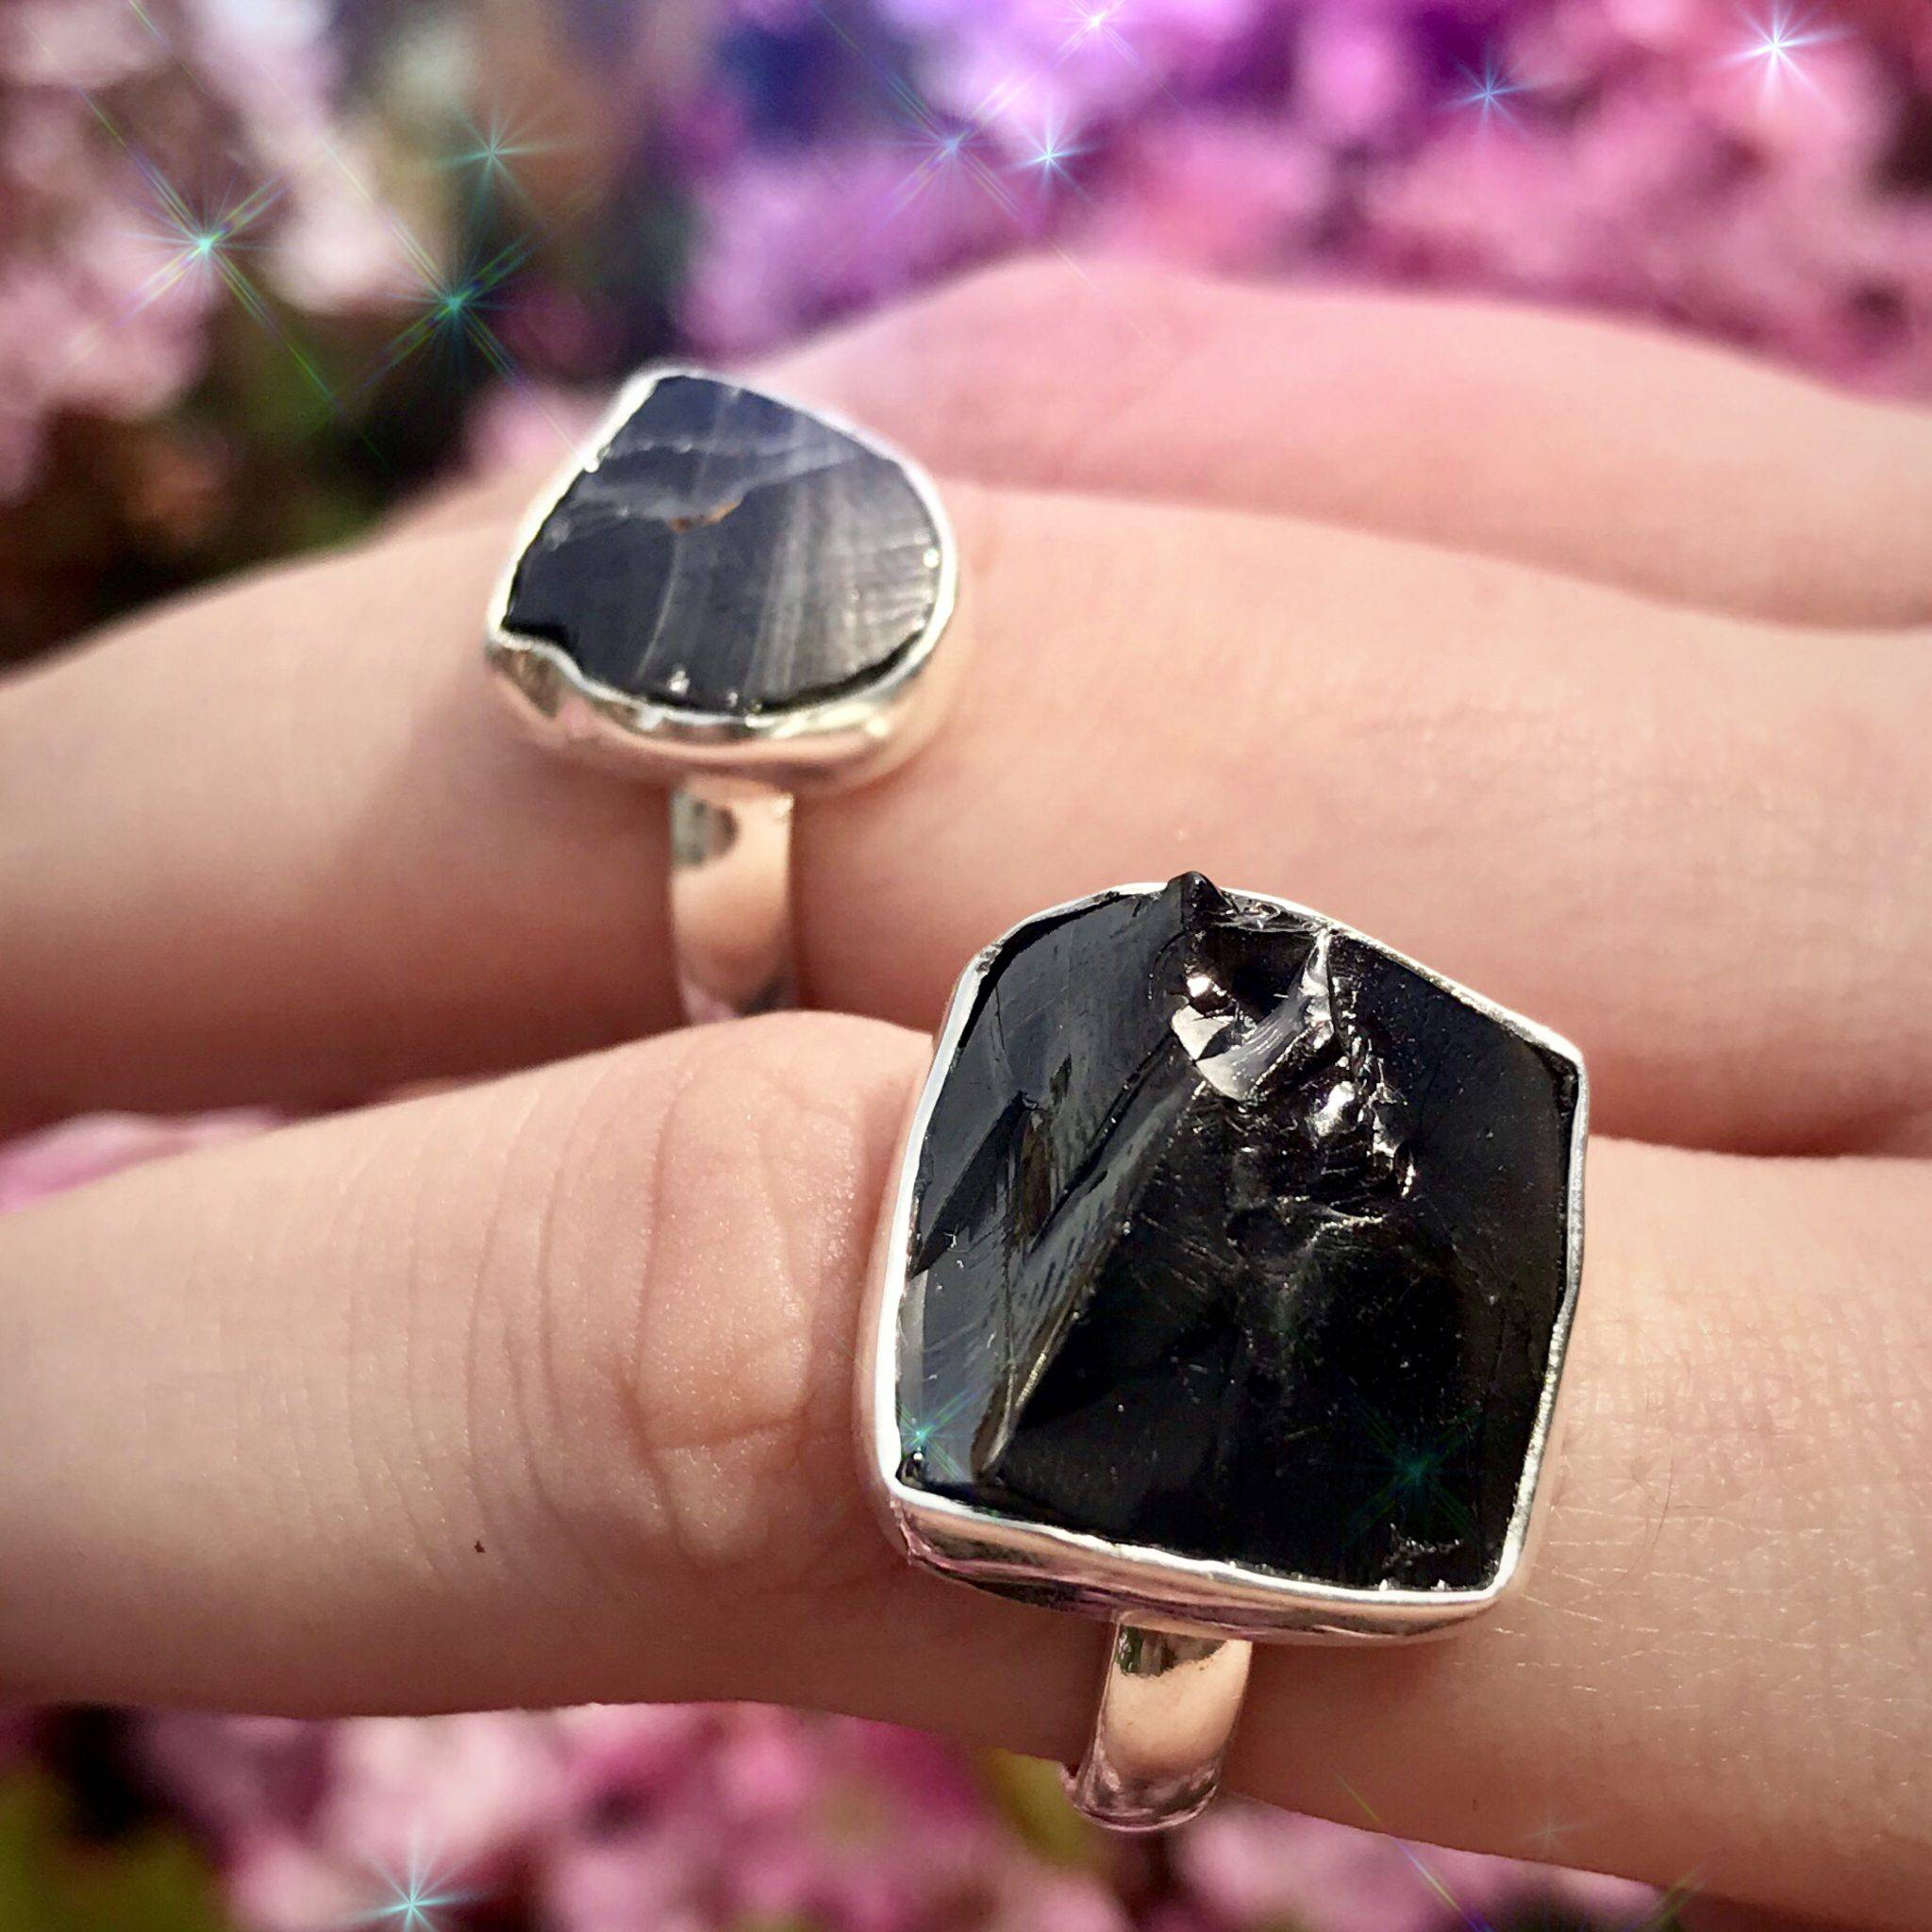 Shungite rings for purification, truth-telling, and spiritual light